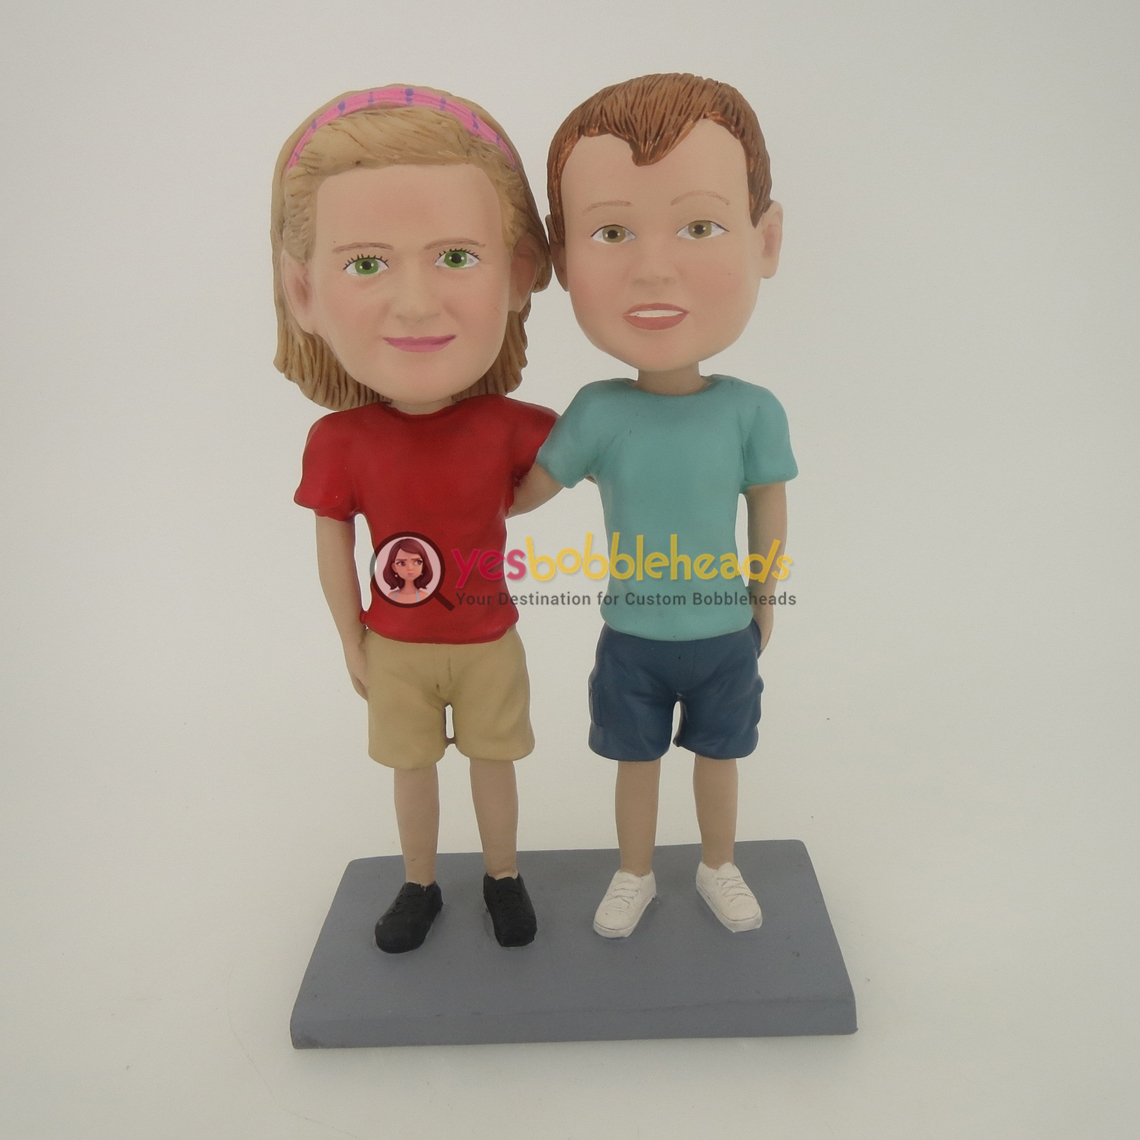 Picture of Custom Bobblehead Doll: Friends Couple